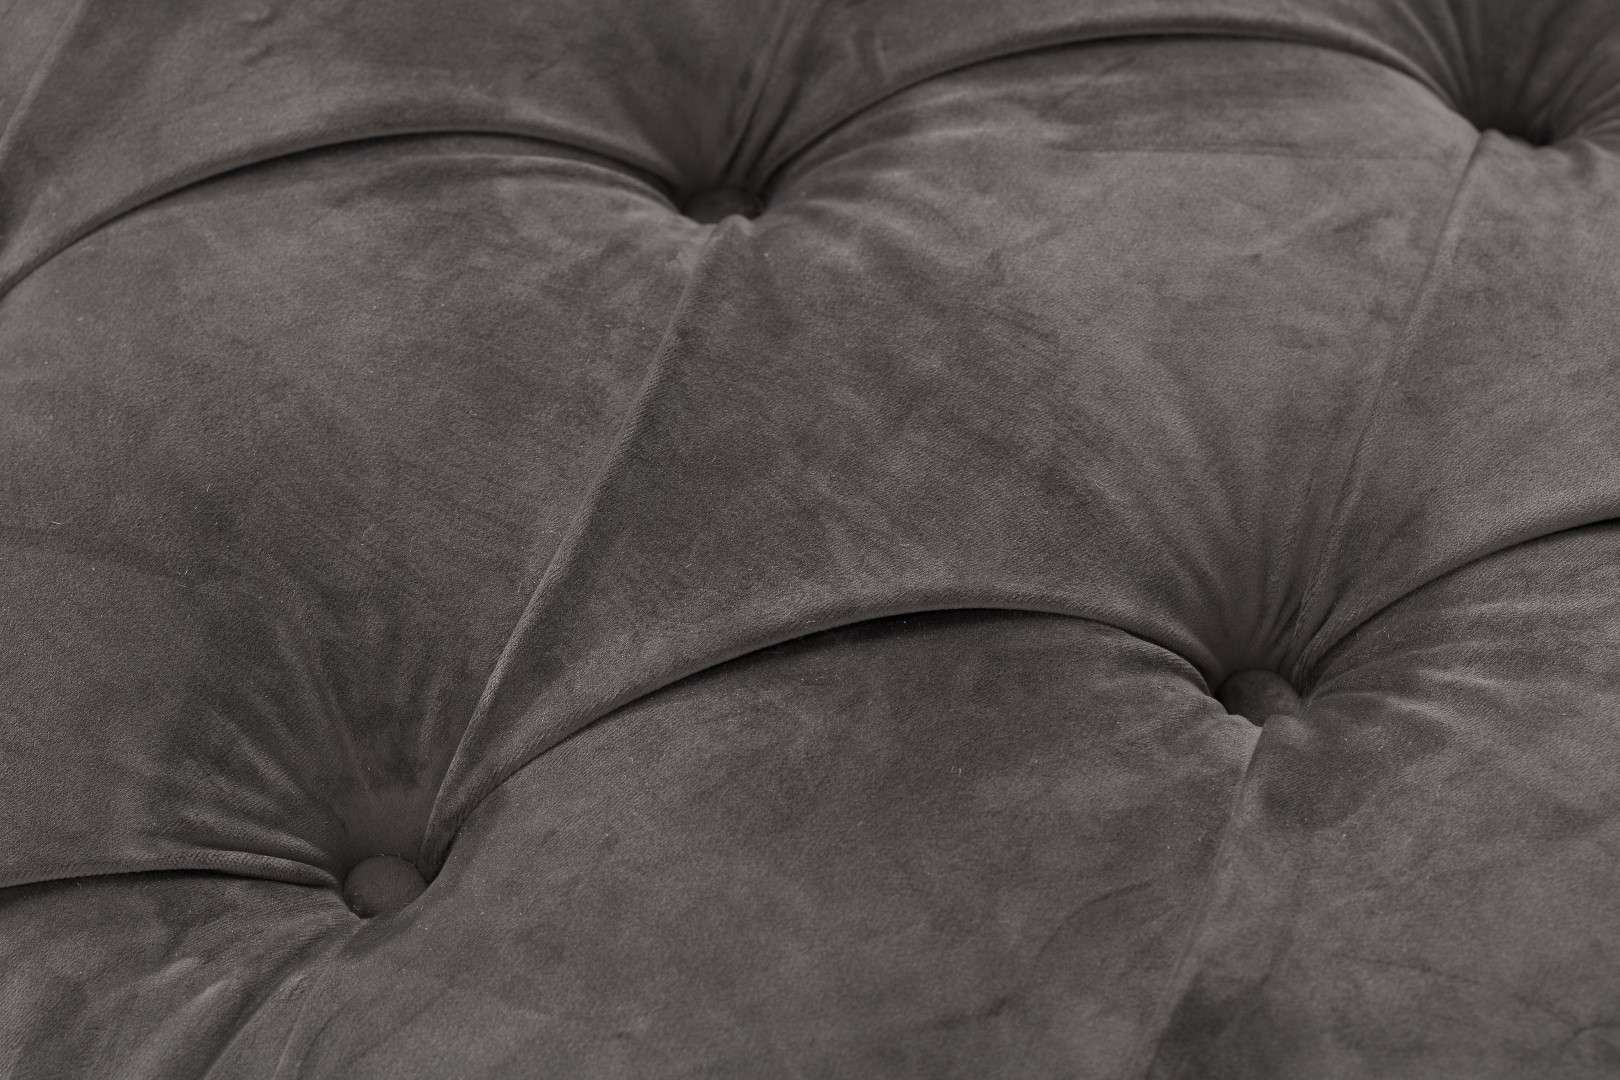 Sofa Chesterfield Glamour Velvet Dark Grey 2-os.